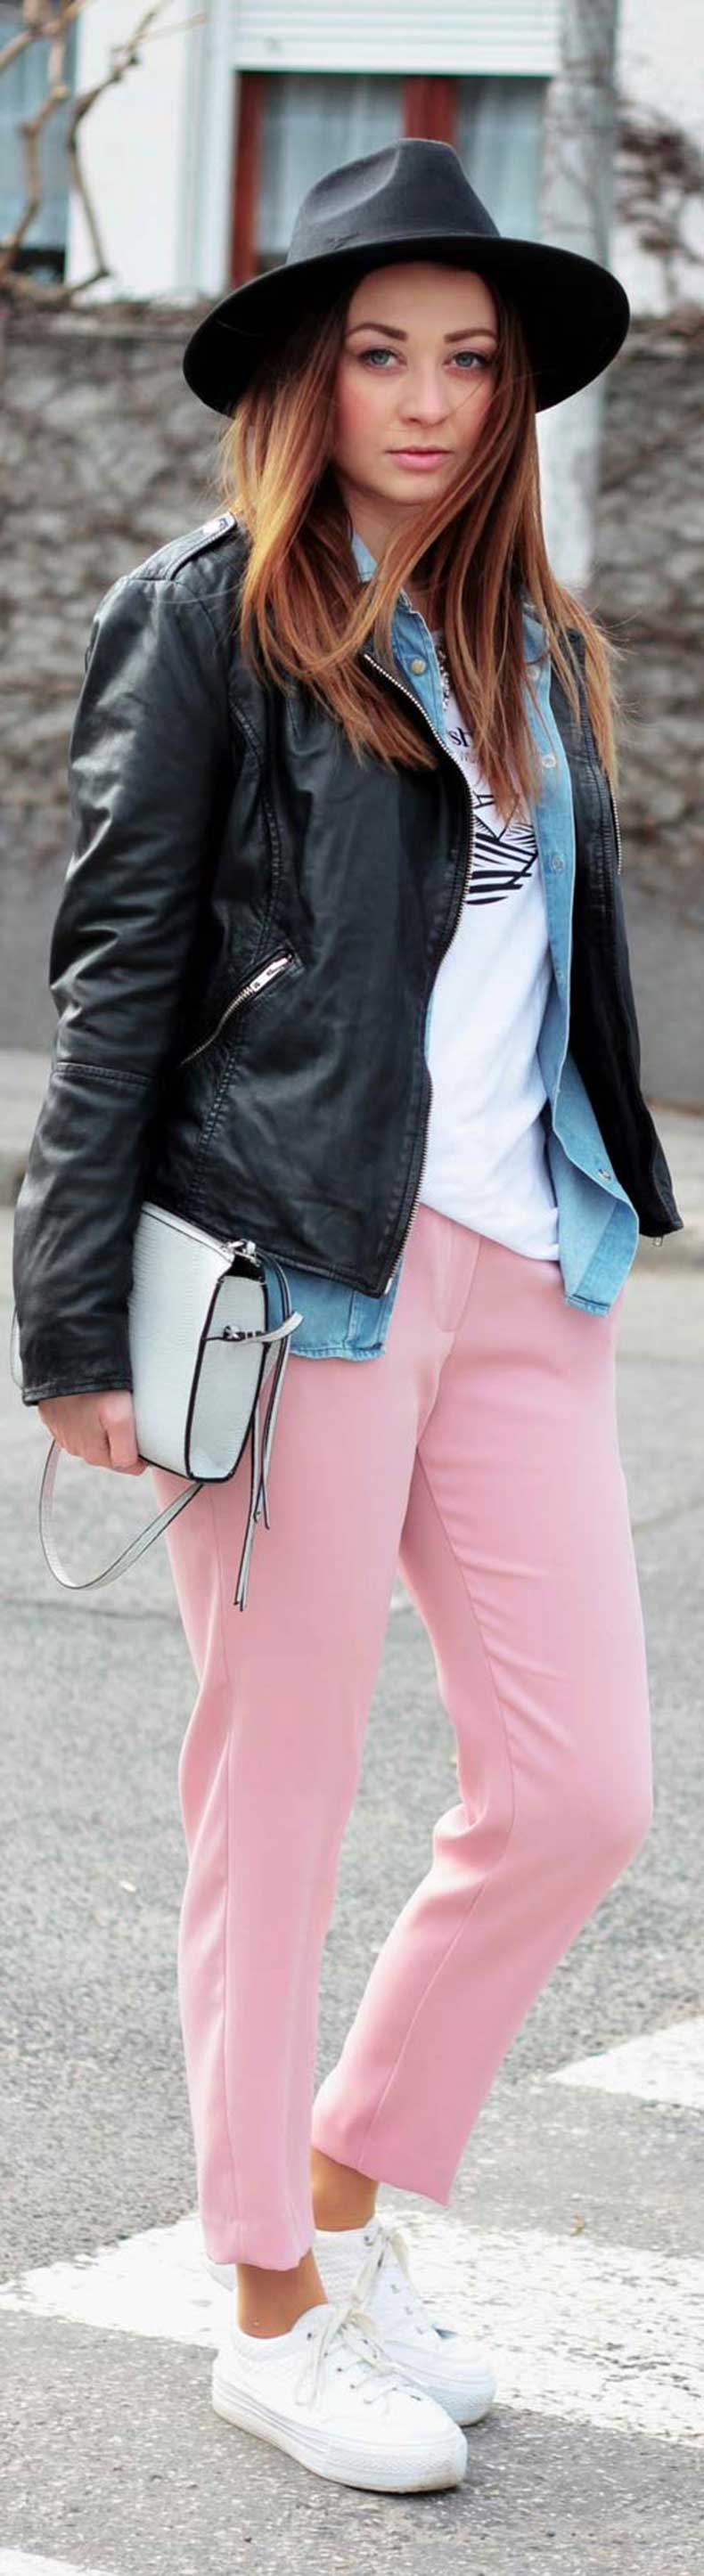 Pink-Pants-White-Sneakers-Spring-Outfit